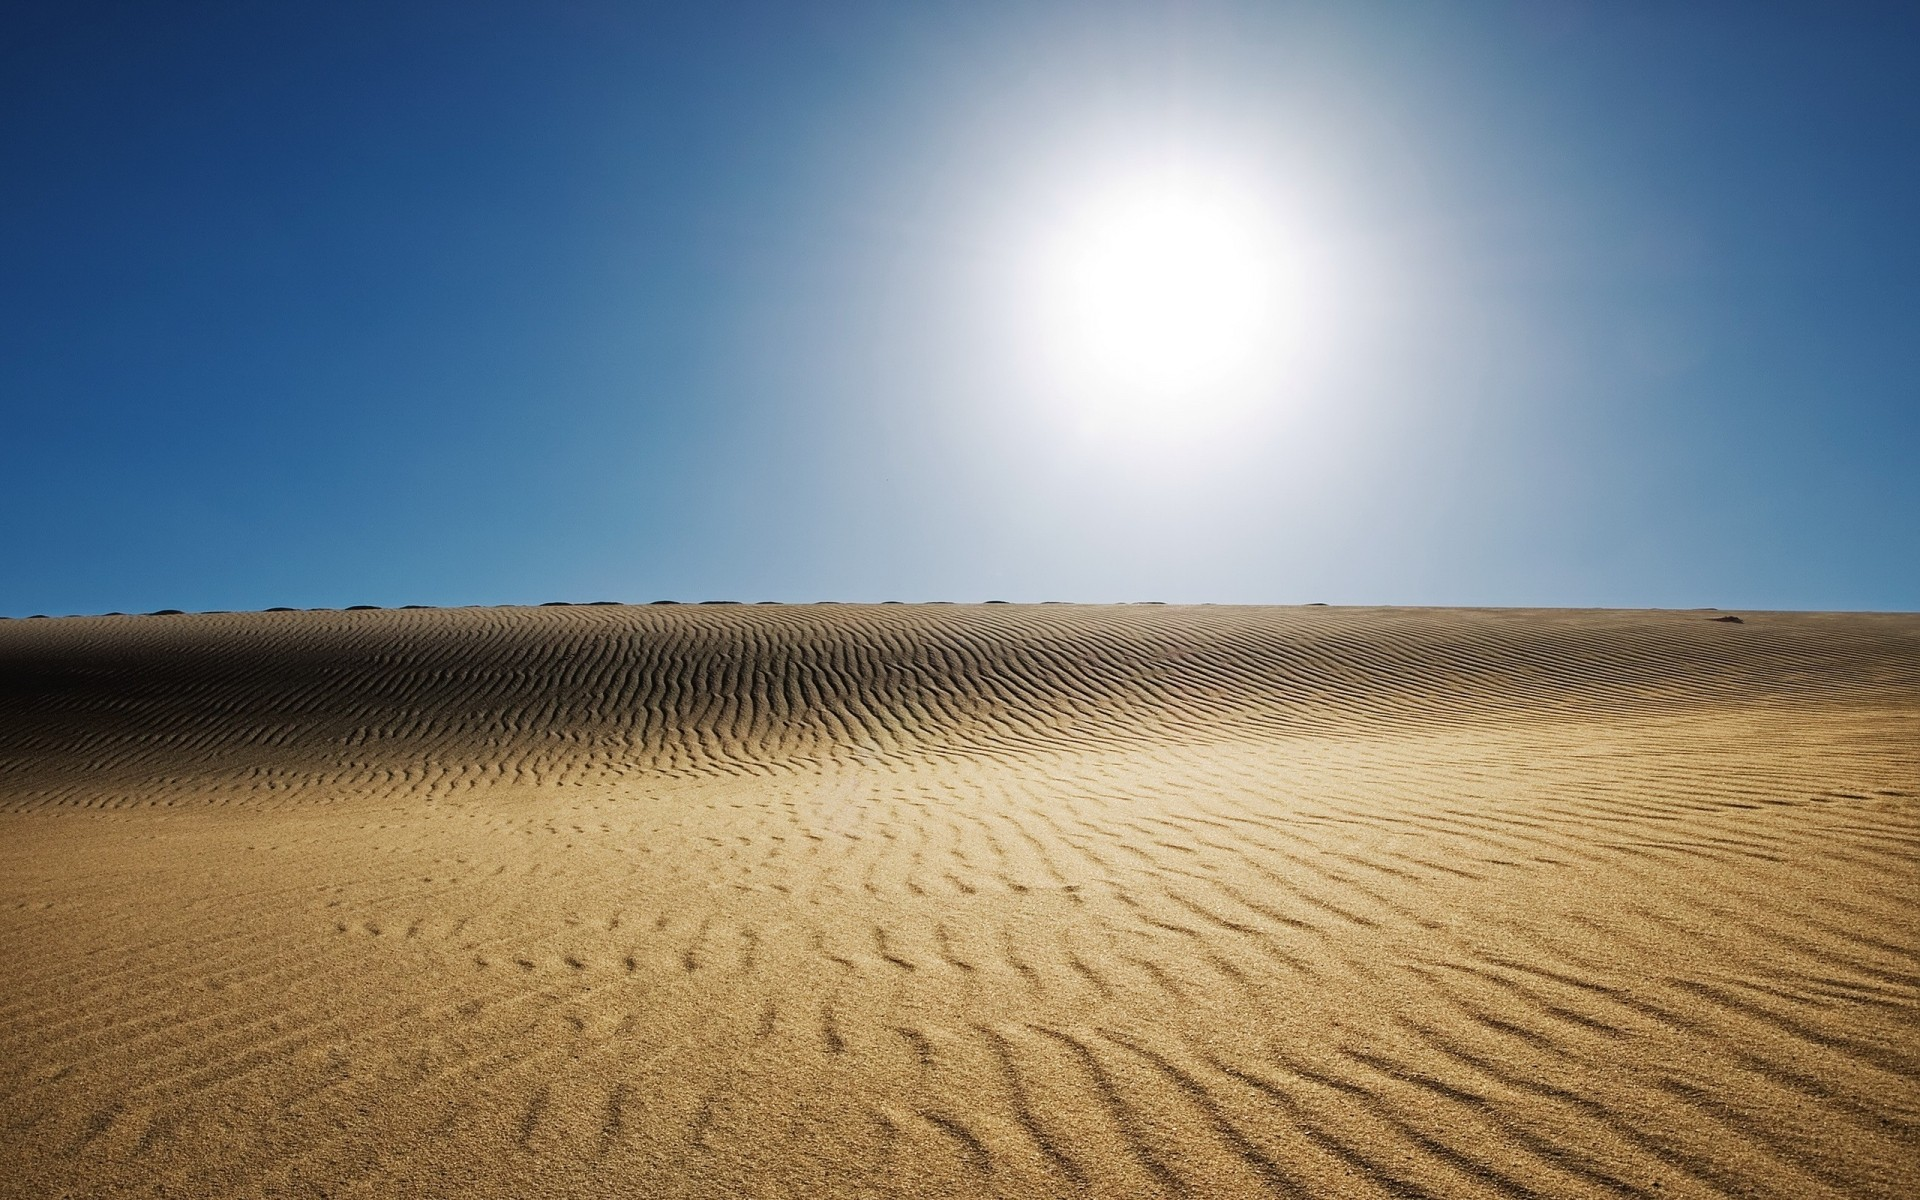 landscapes sand dune desert hot barren dry arid beach landscape nature alone sun fair weather travel summer sky background